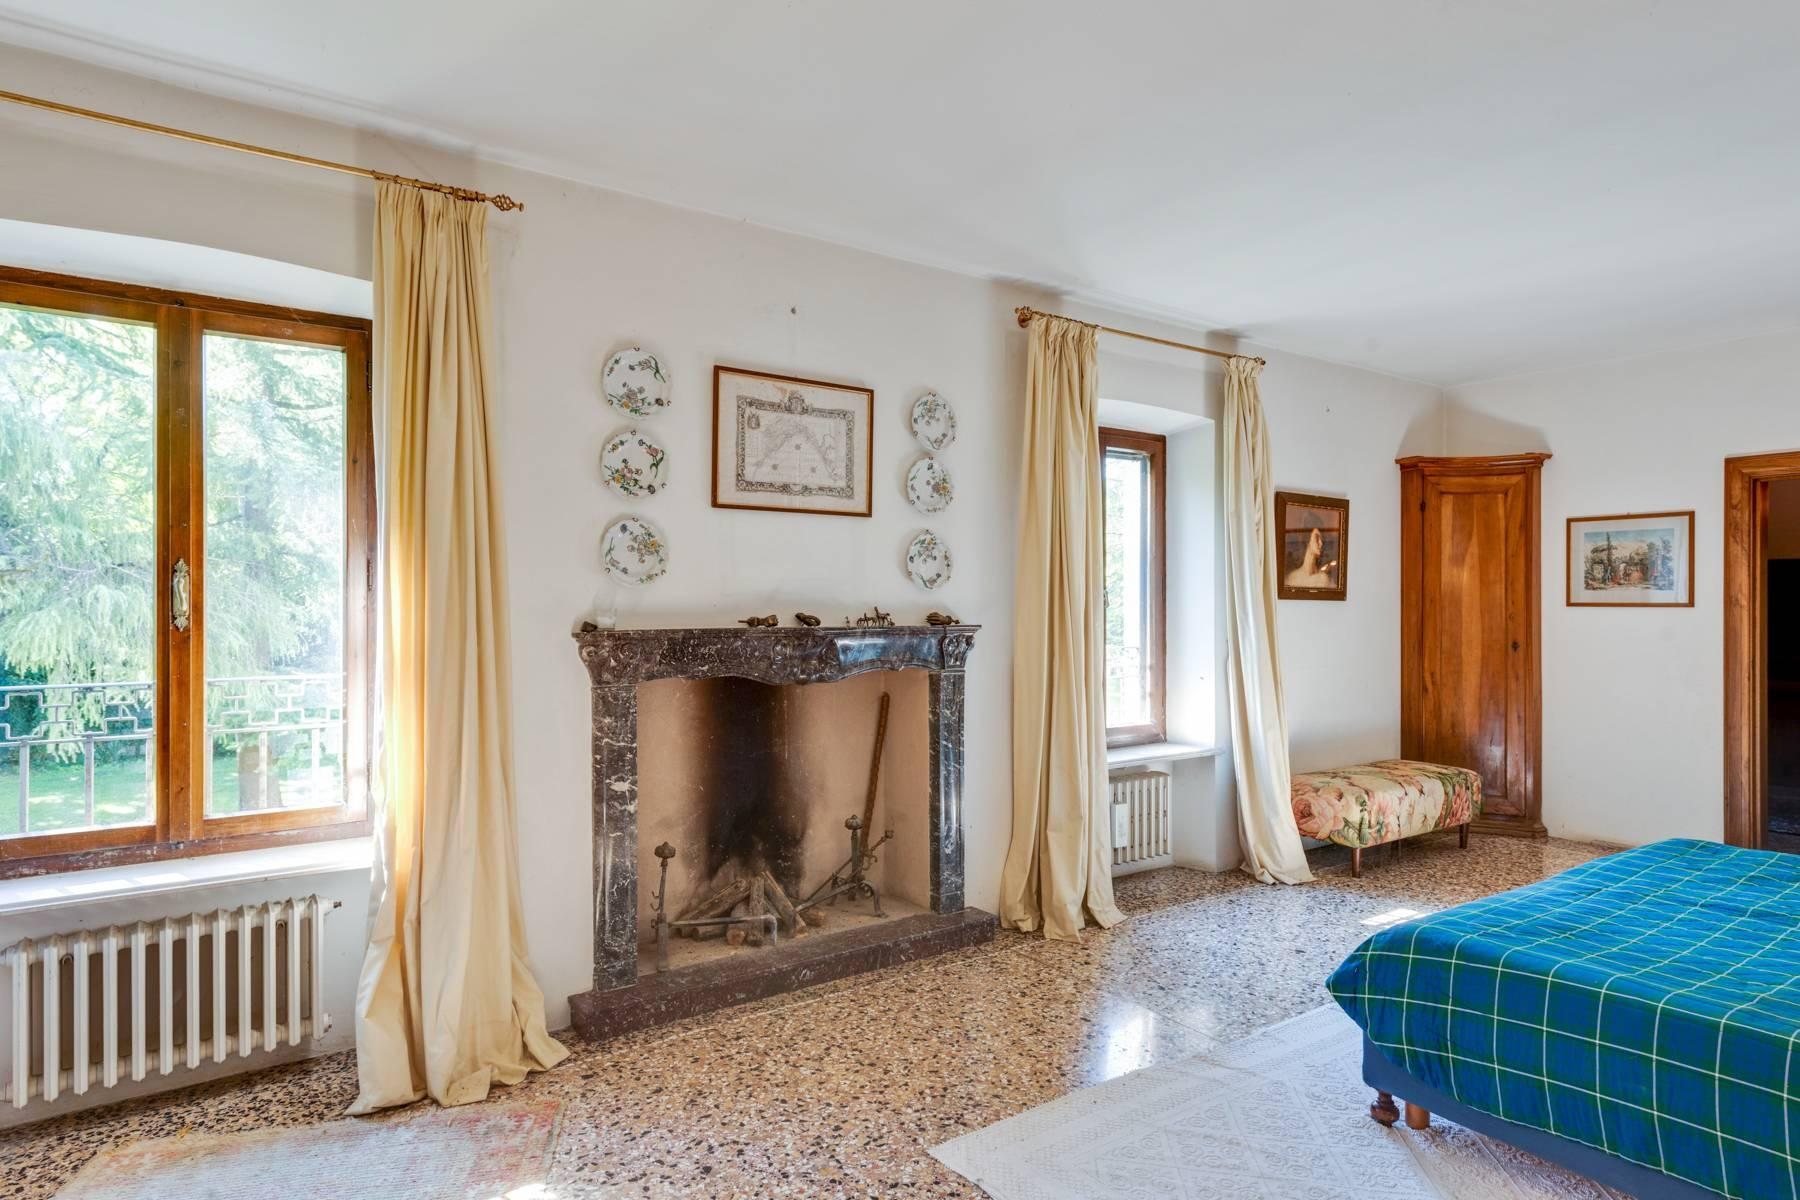 Stunning 18th century villa with 45 hectares of land - 30